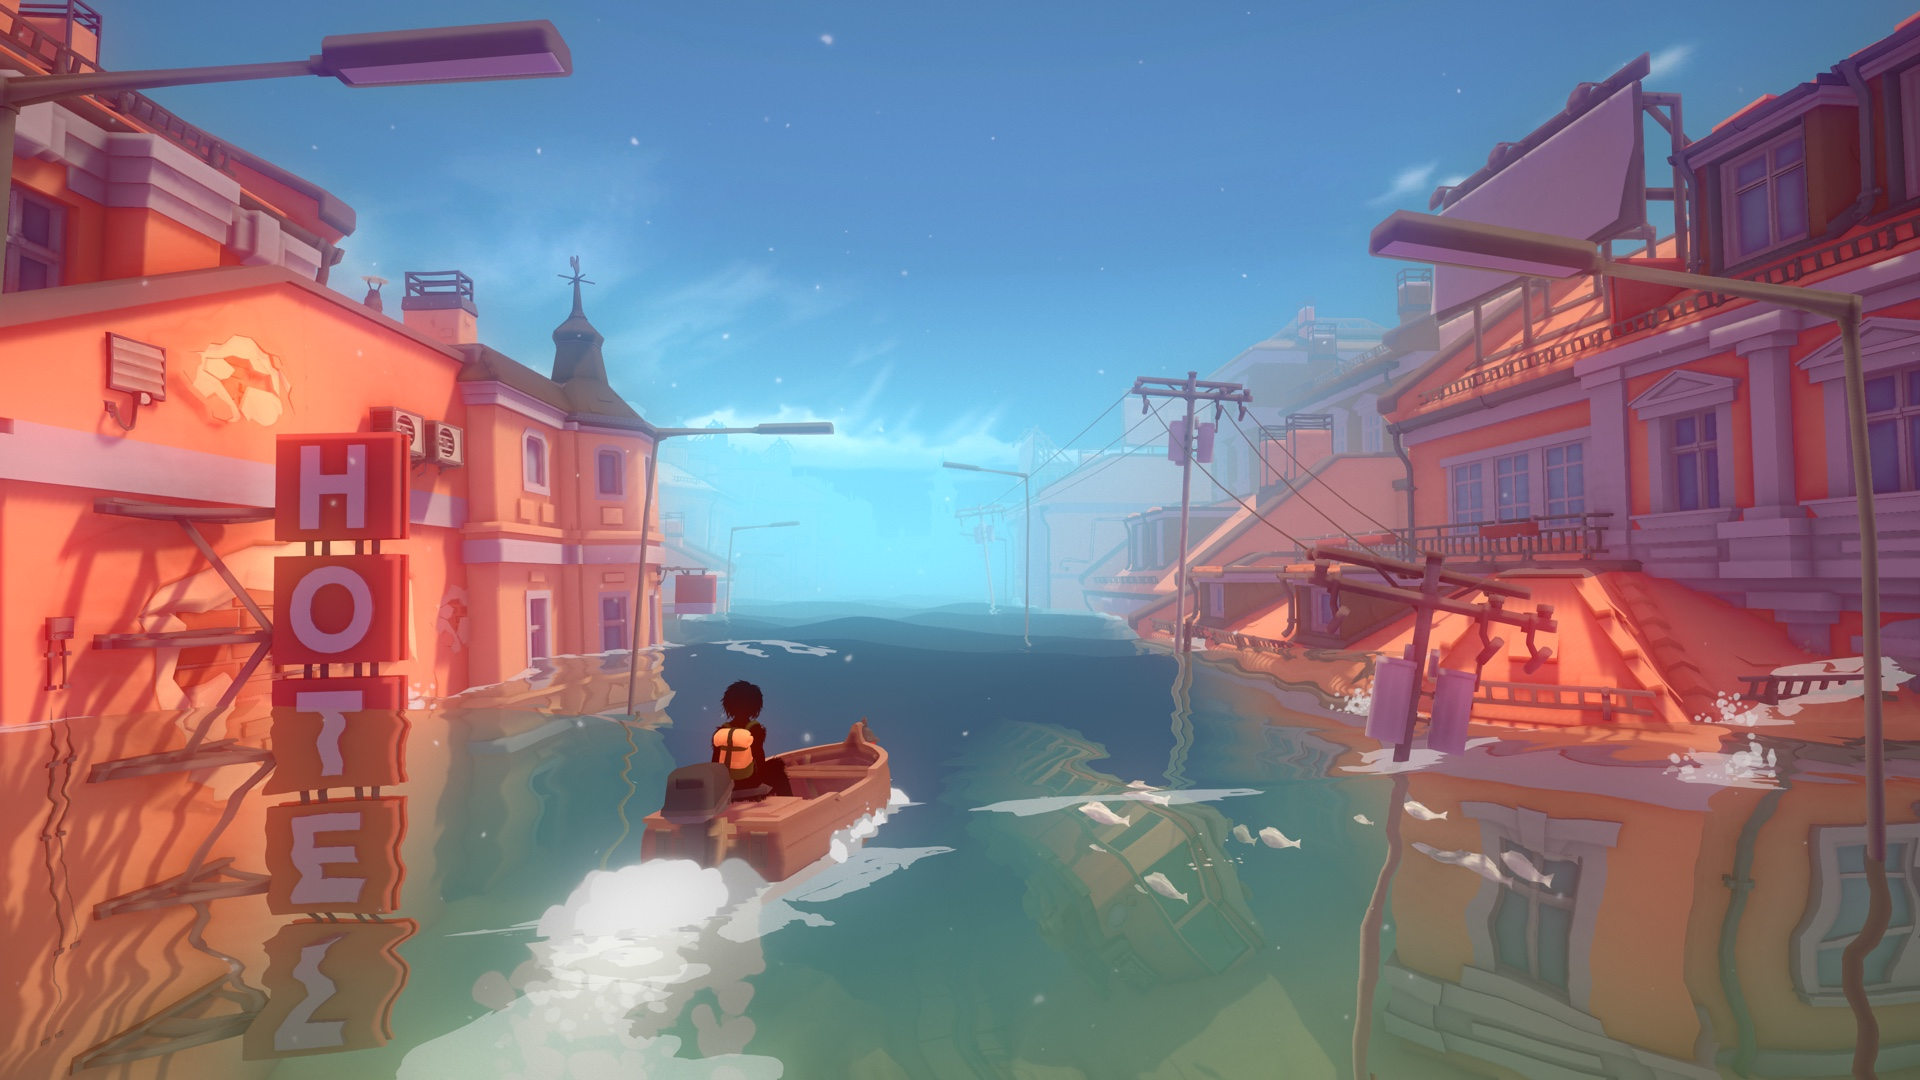 6 Indie Games We Hope To See At E3